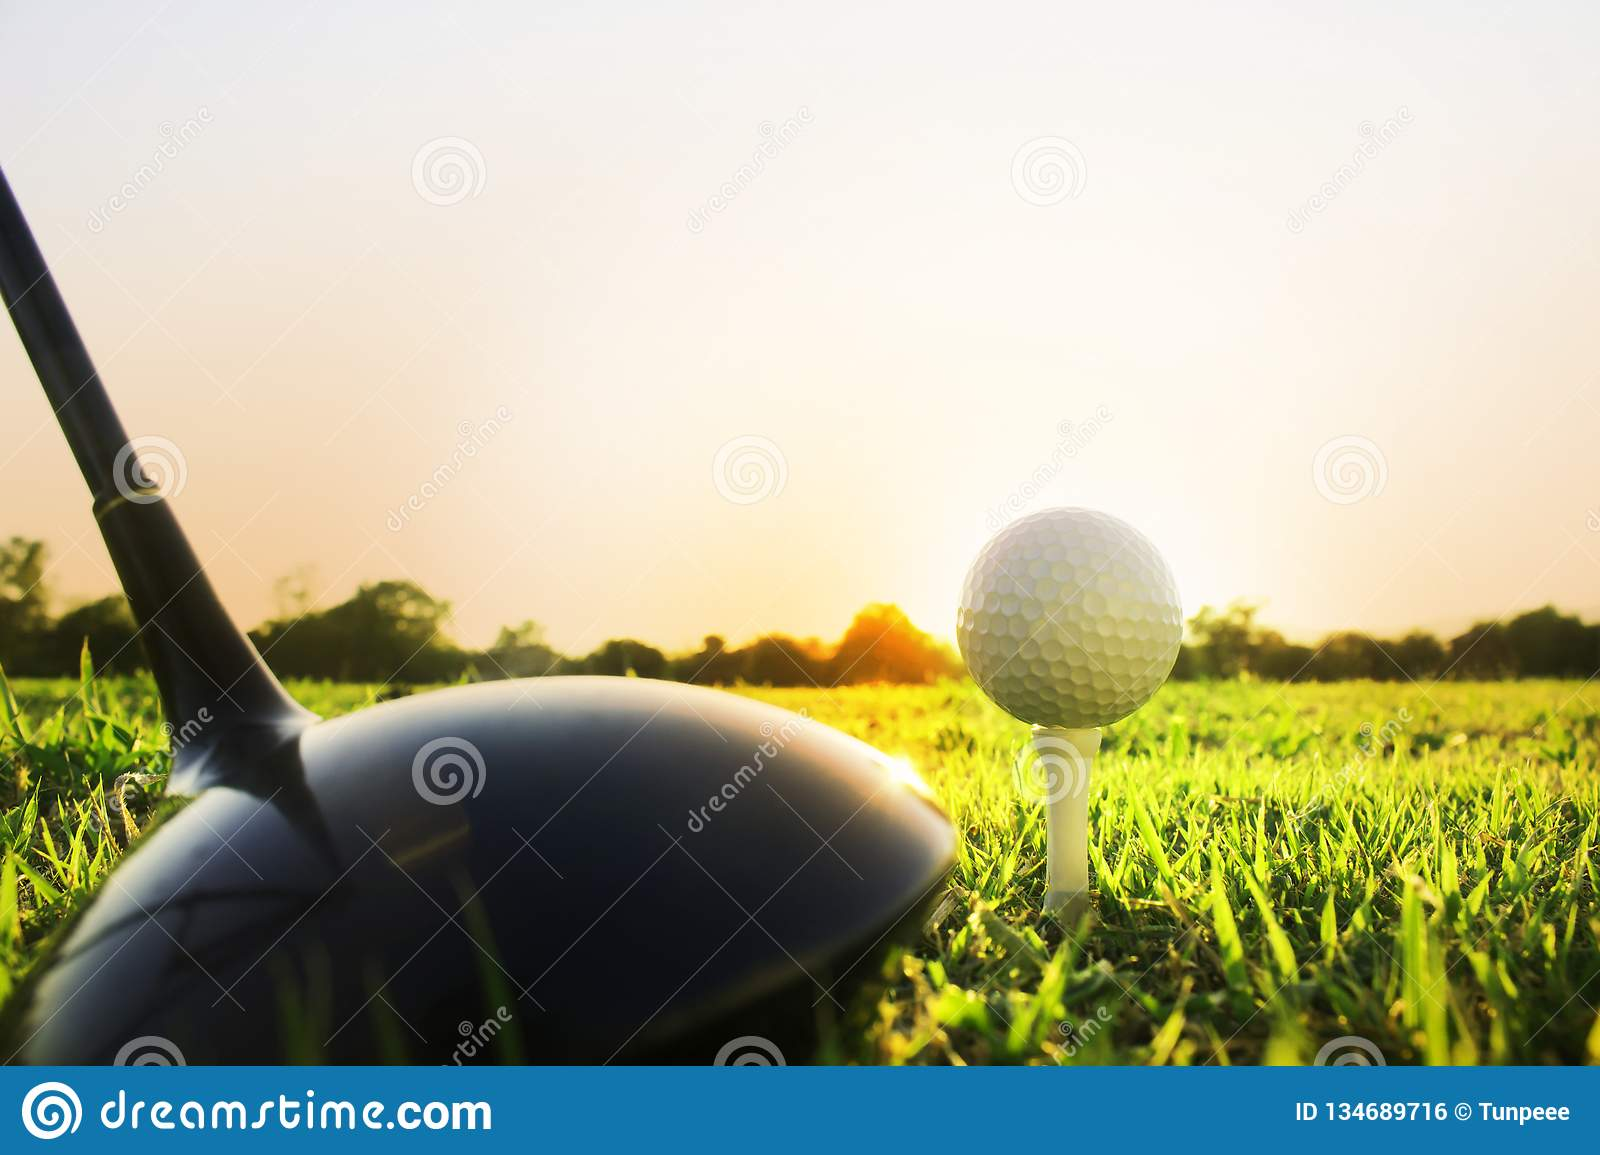 Golf club and golf ball on green grass ready to play.